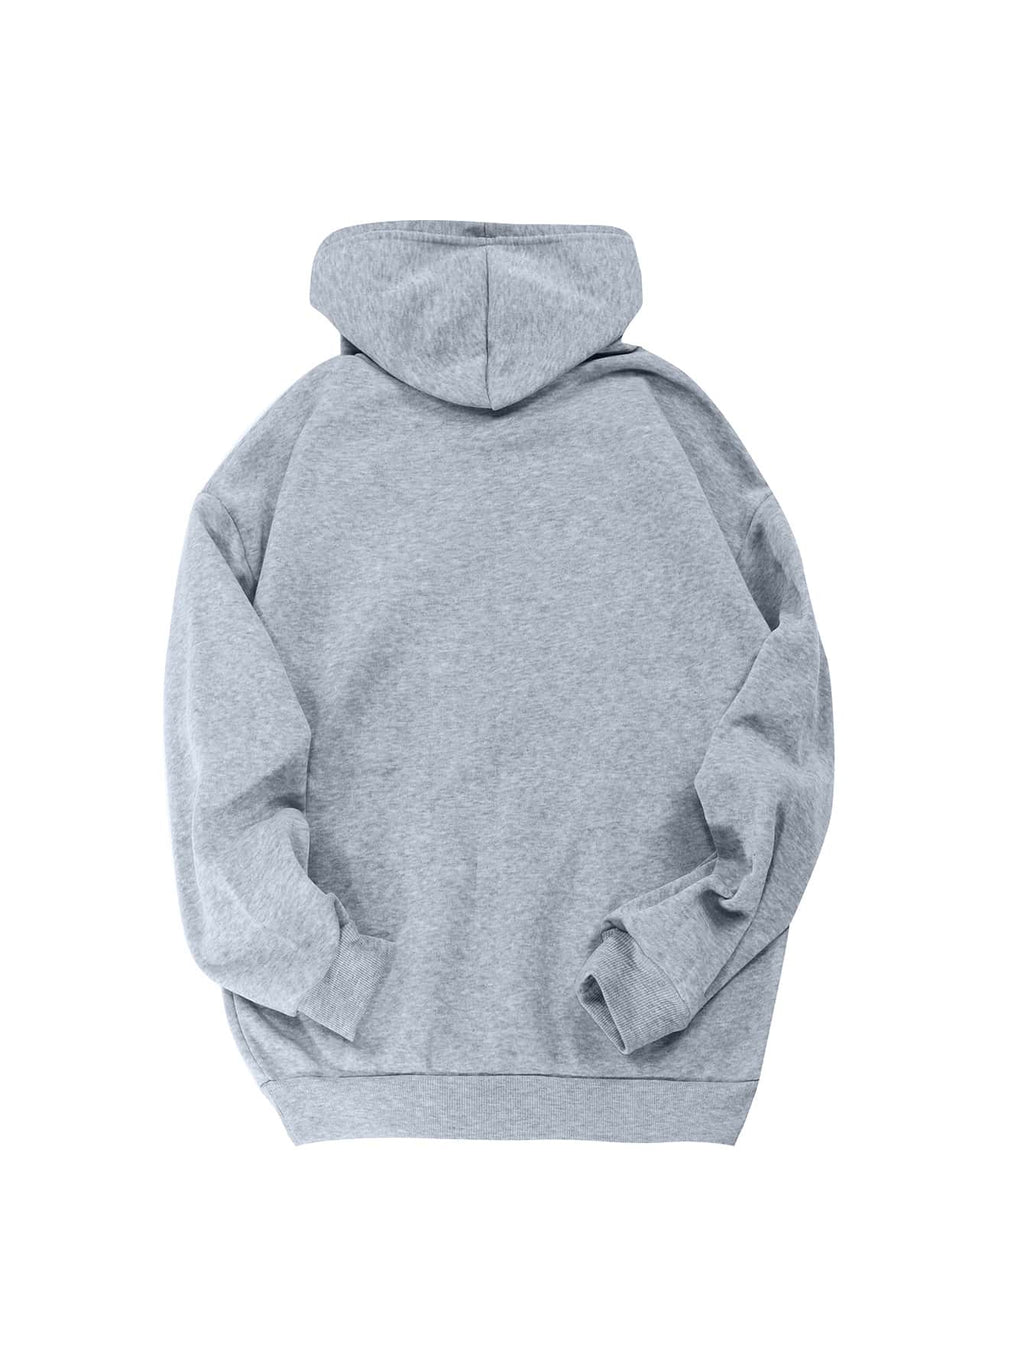 Kangaroo Pocket Thermal Lined Drawstring Hoodie - INS | Online Fashion Free Shipping Clothing, Dresses, Tops, Shoes